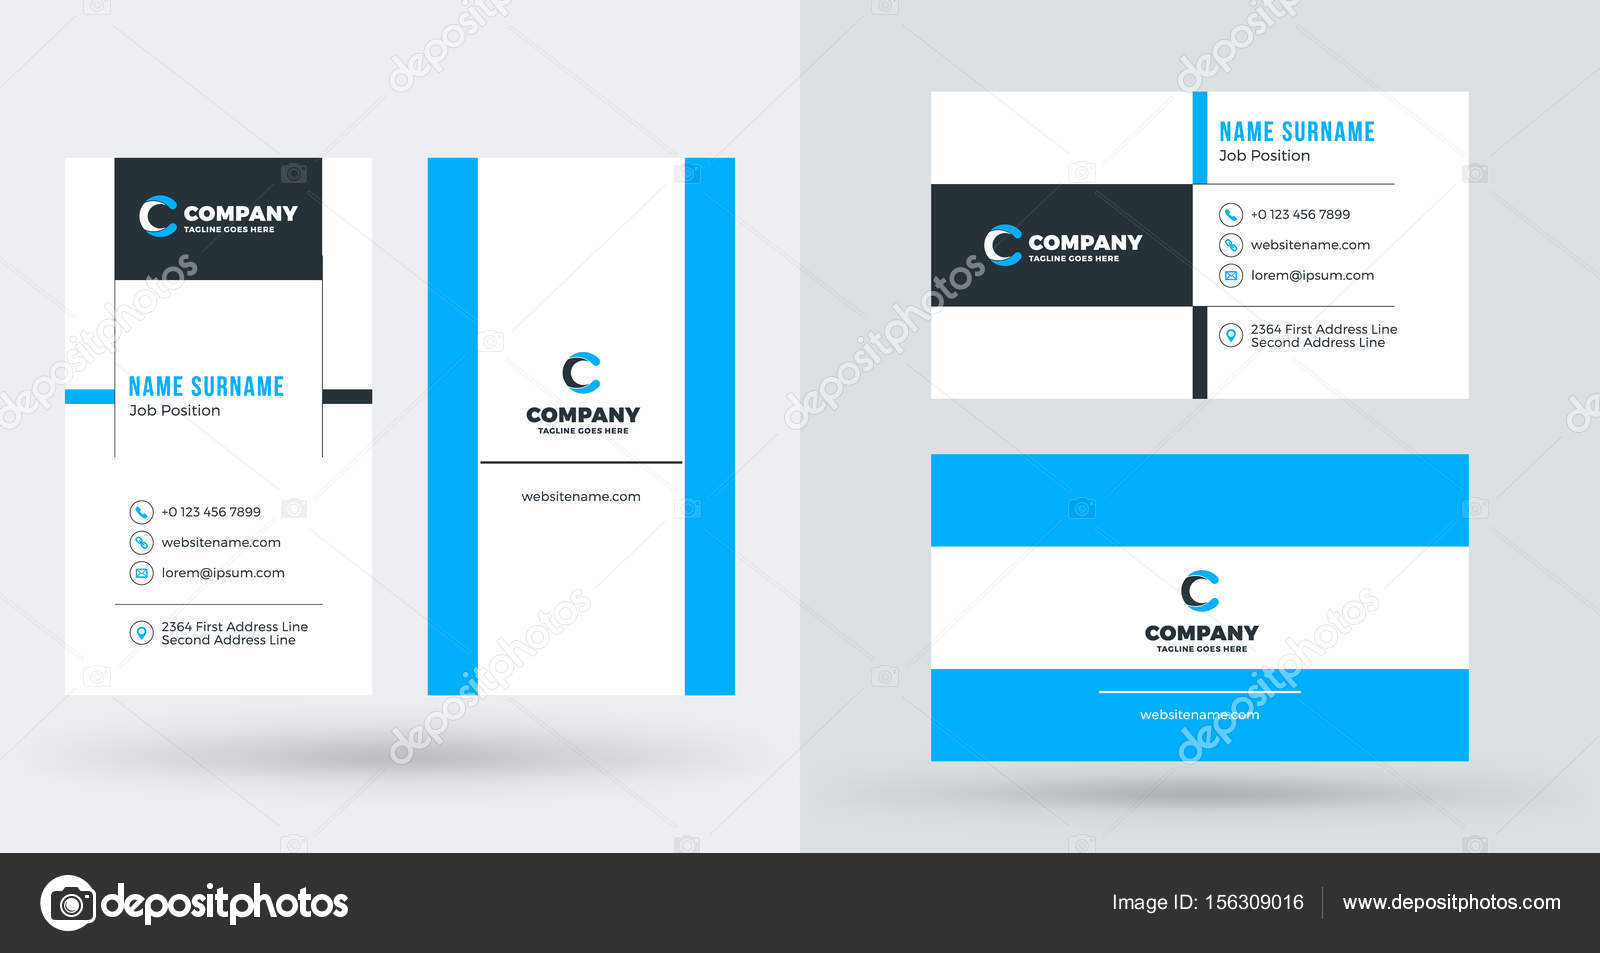 Double sided creative business card template portrait and landscape double sided creative business card template portrait and landscape orientation horizontal and vertical wajeb Choice Image